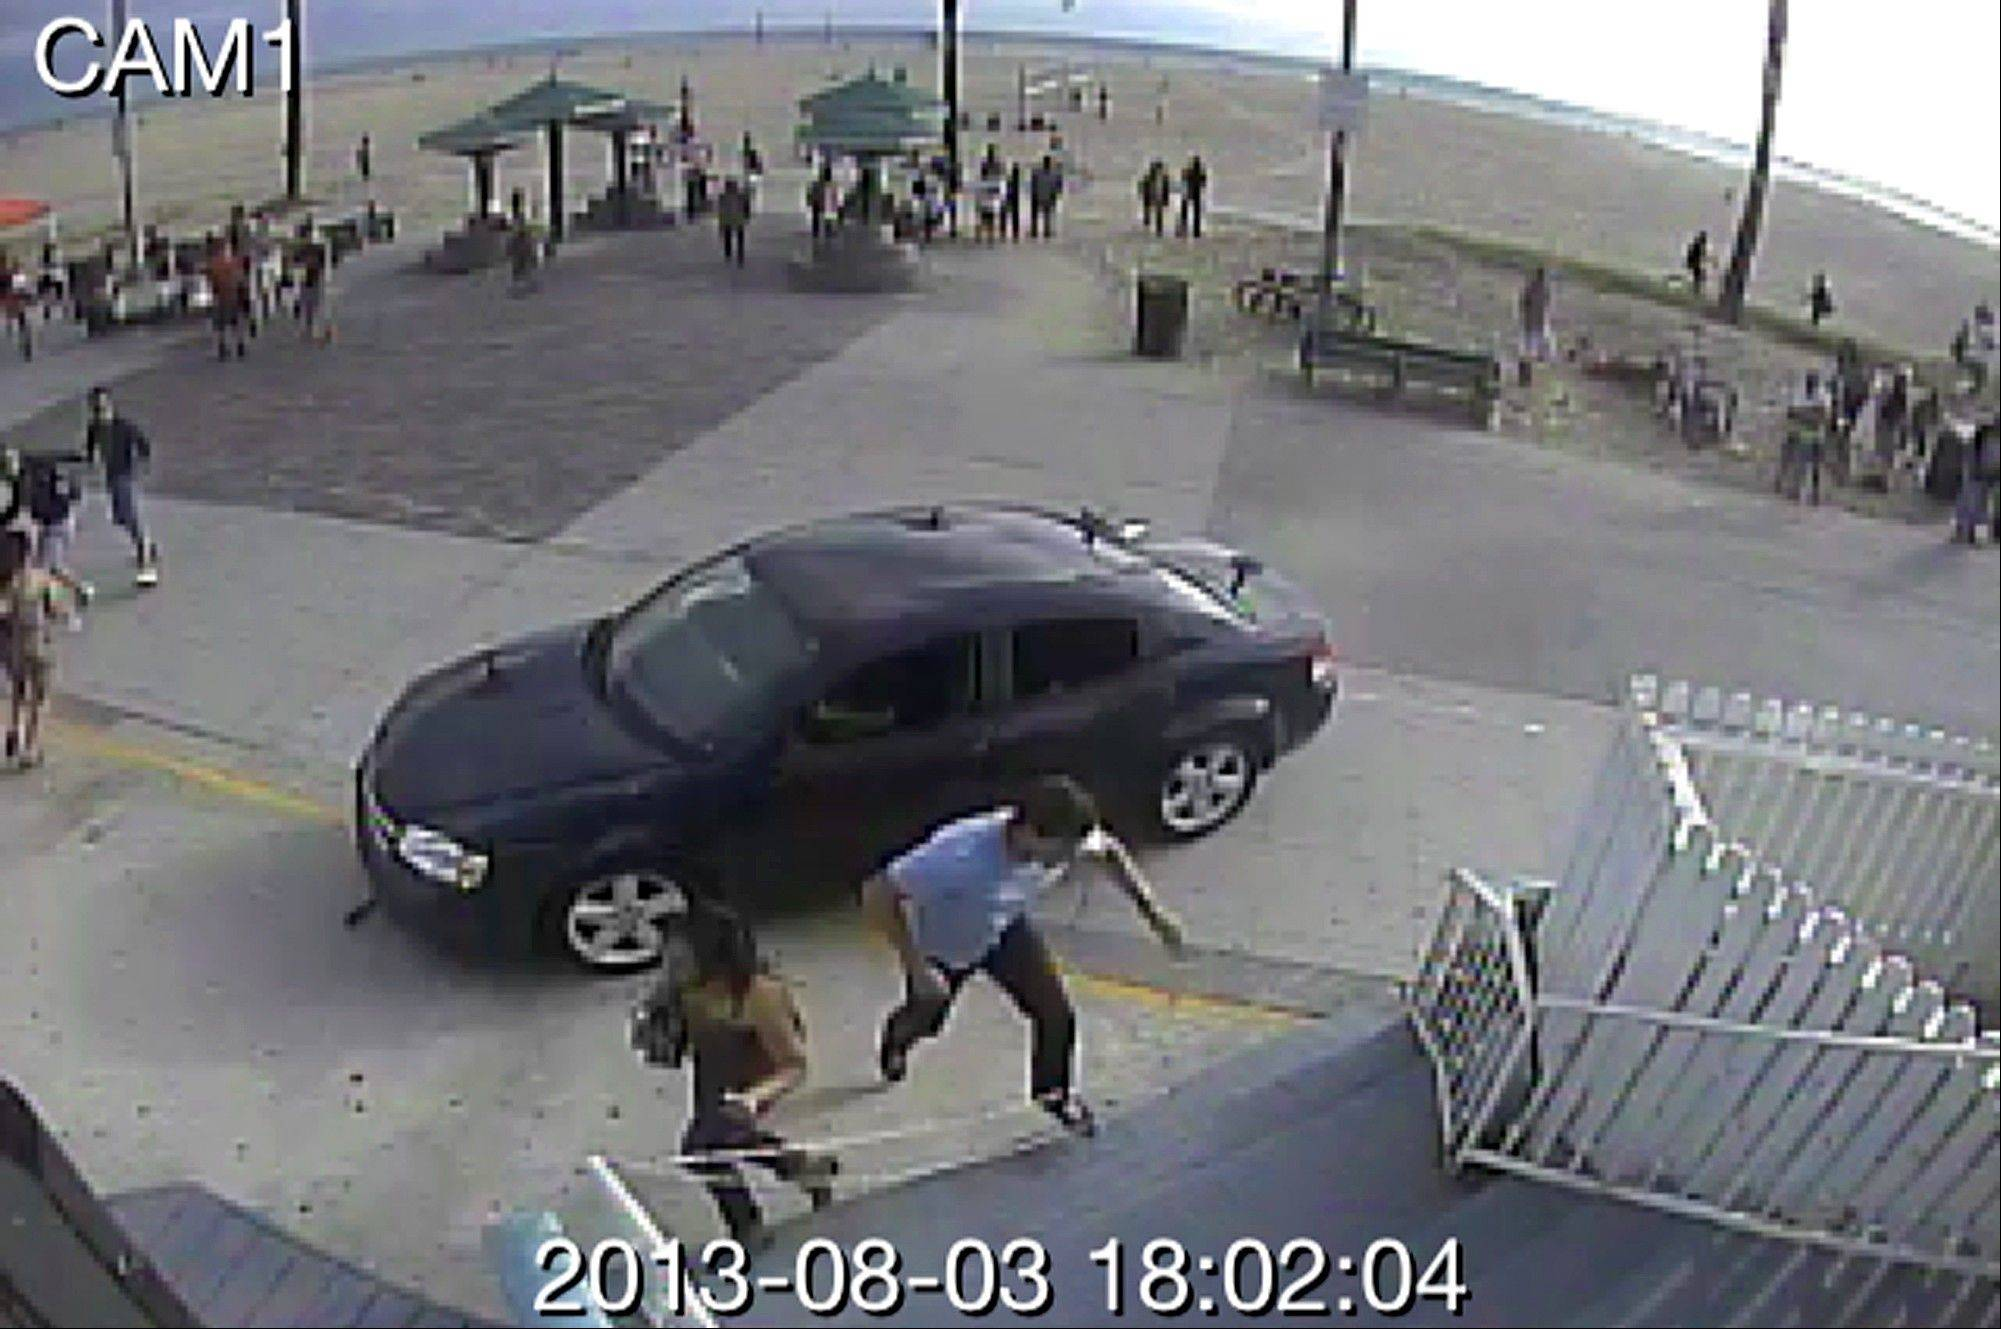 In this image take from a security camera, pedestrians scatter as a car drives through a packed afternoon crowd along the Venice Beach boardwalk Saturday in Los Angeles. At least a dozen people were injured, and one of them died later at the hospital, according to police.